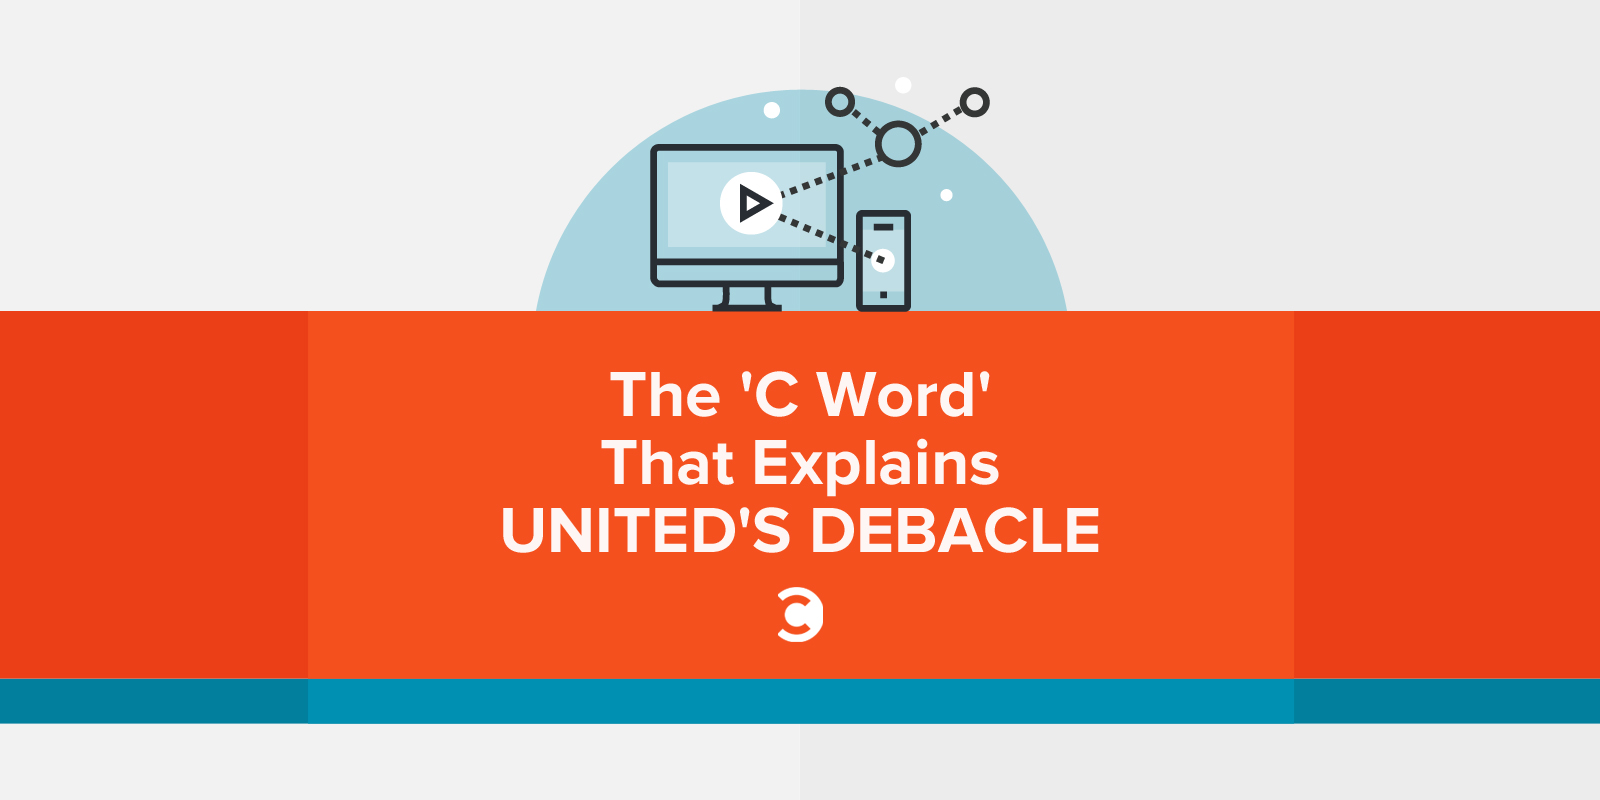 The 'C Word' That Explains United's Debacle